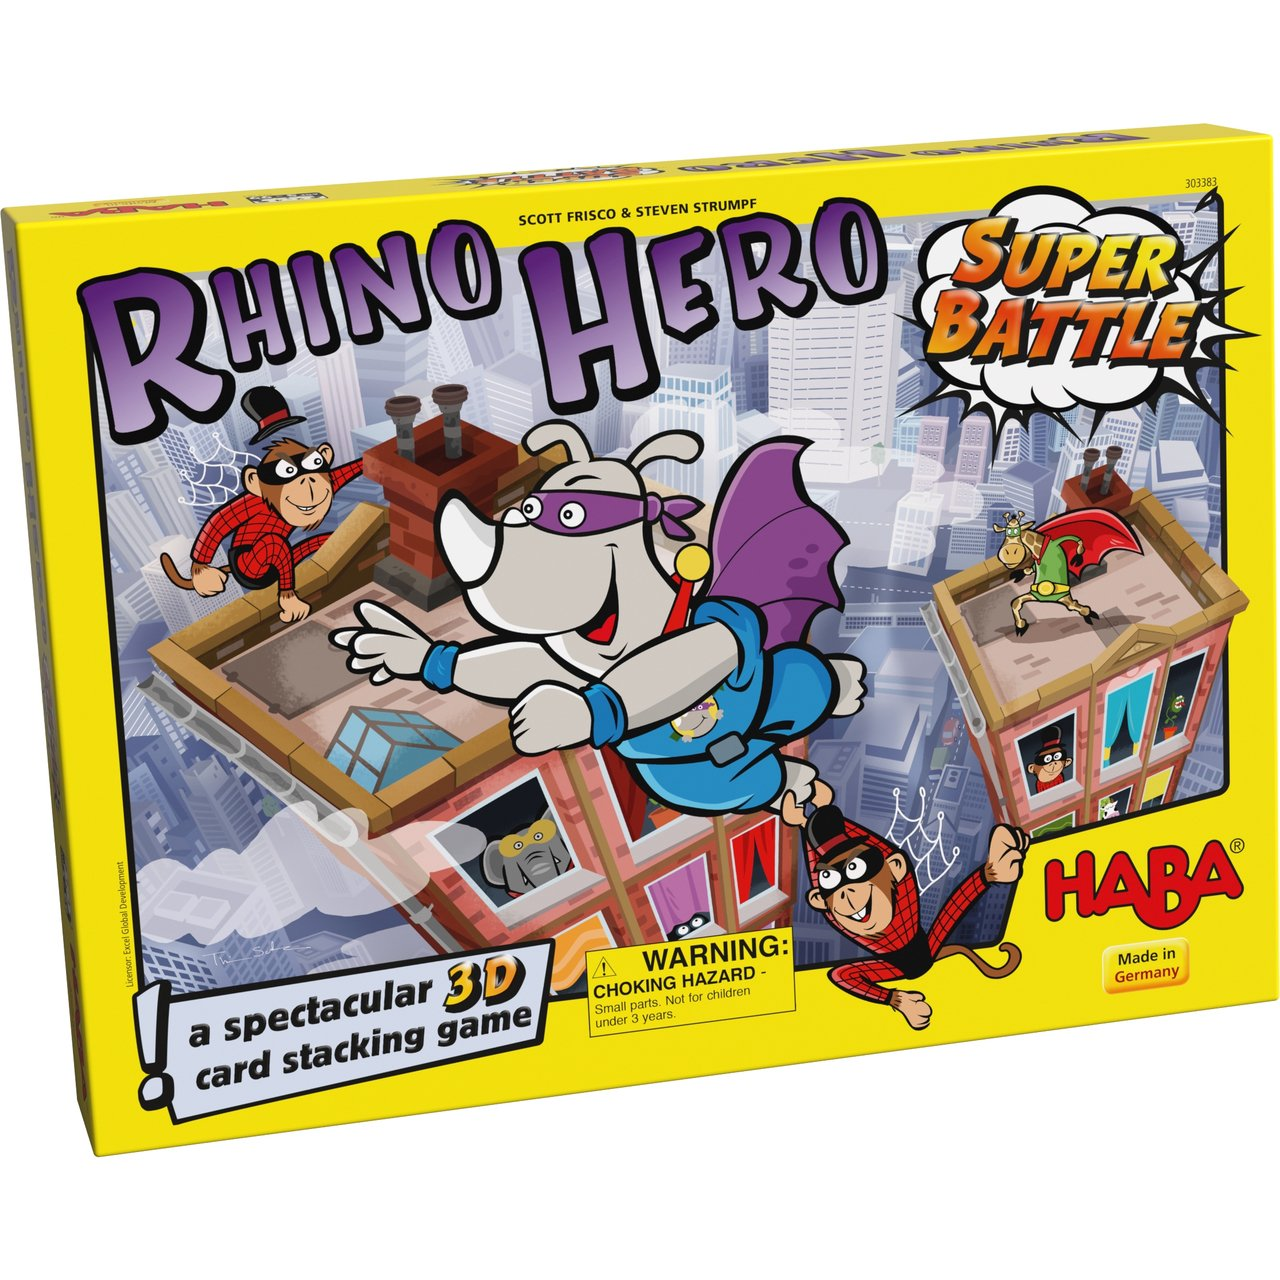 HABA Rhino Hero Super Battle - A Turbulent 3D Stacking Game Fun for All Ages